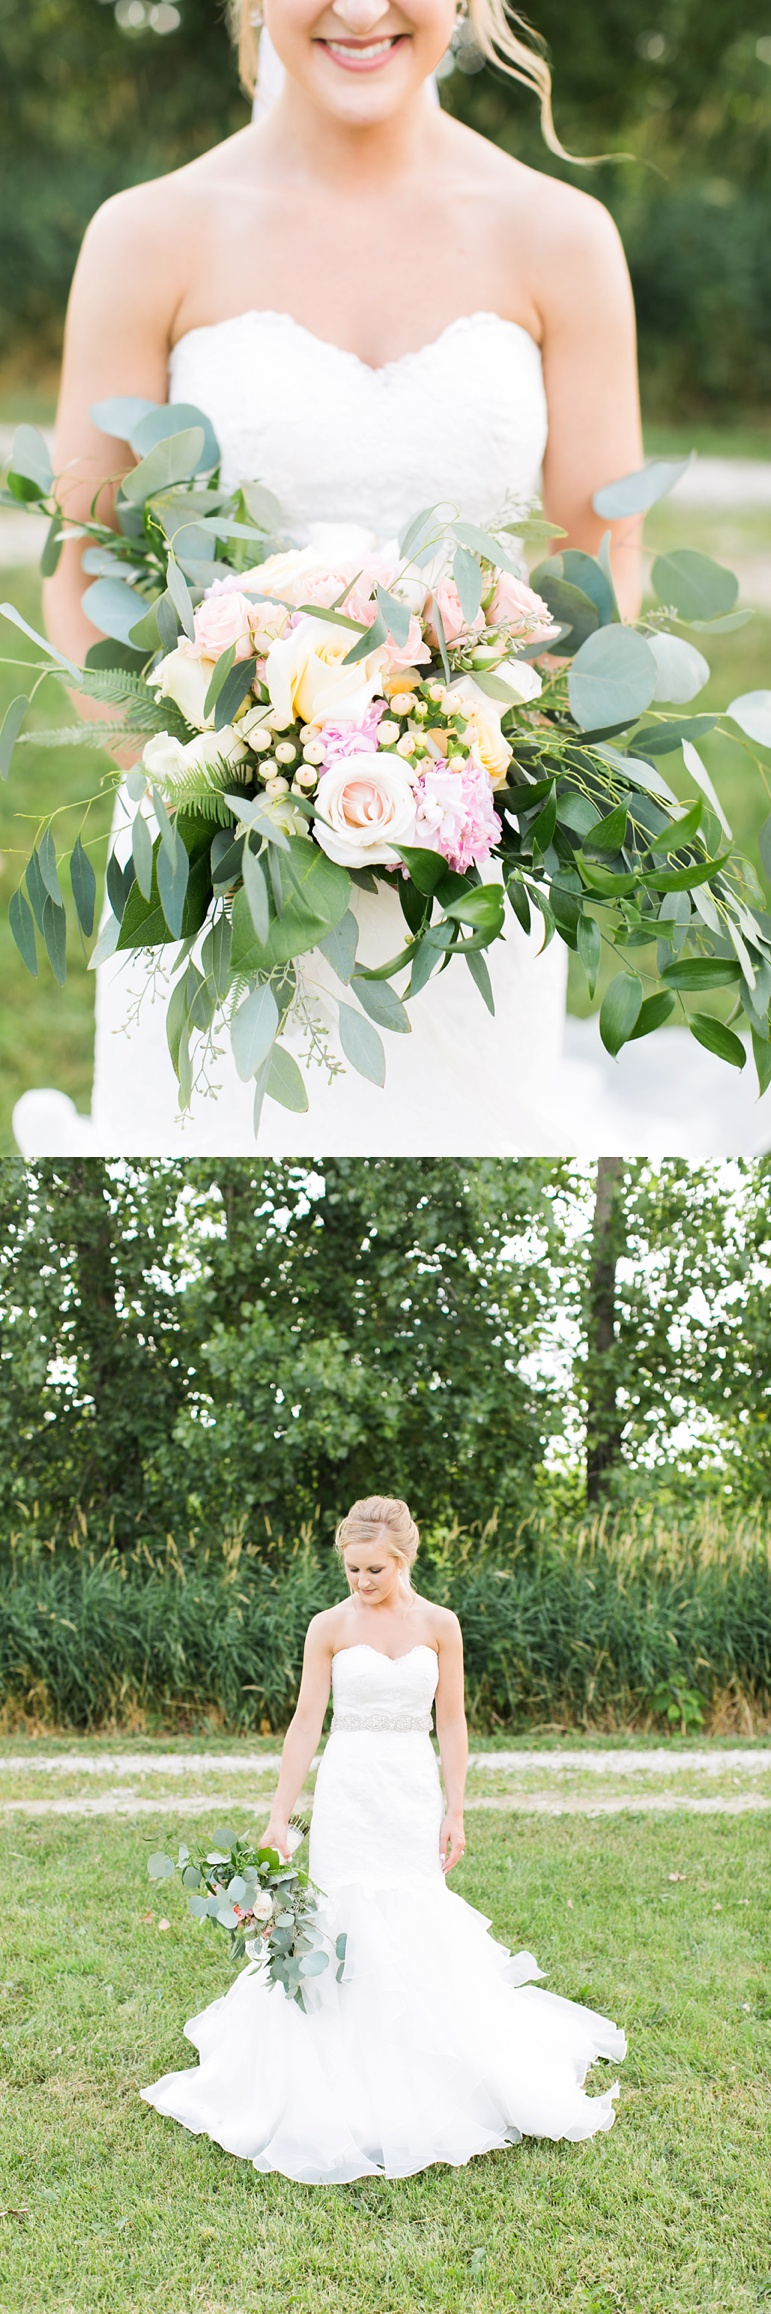 Manitowoc Wedding Photographers, St John's Lutheran Church, Twin Fountains Wedding Reception, The Flower Gallery